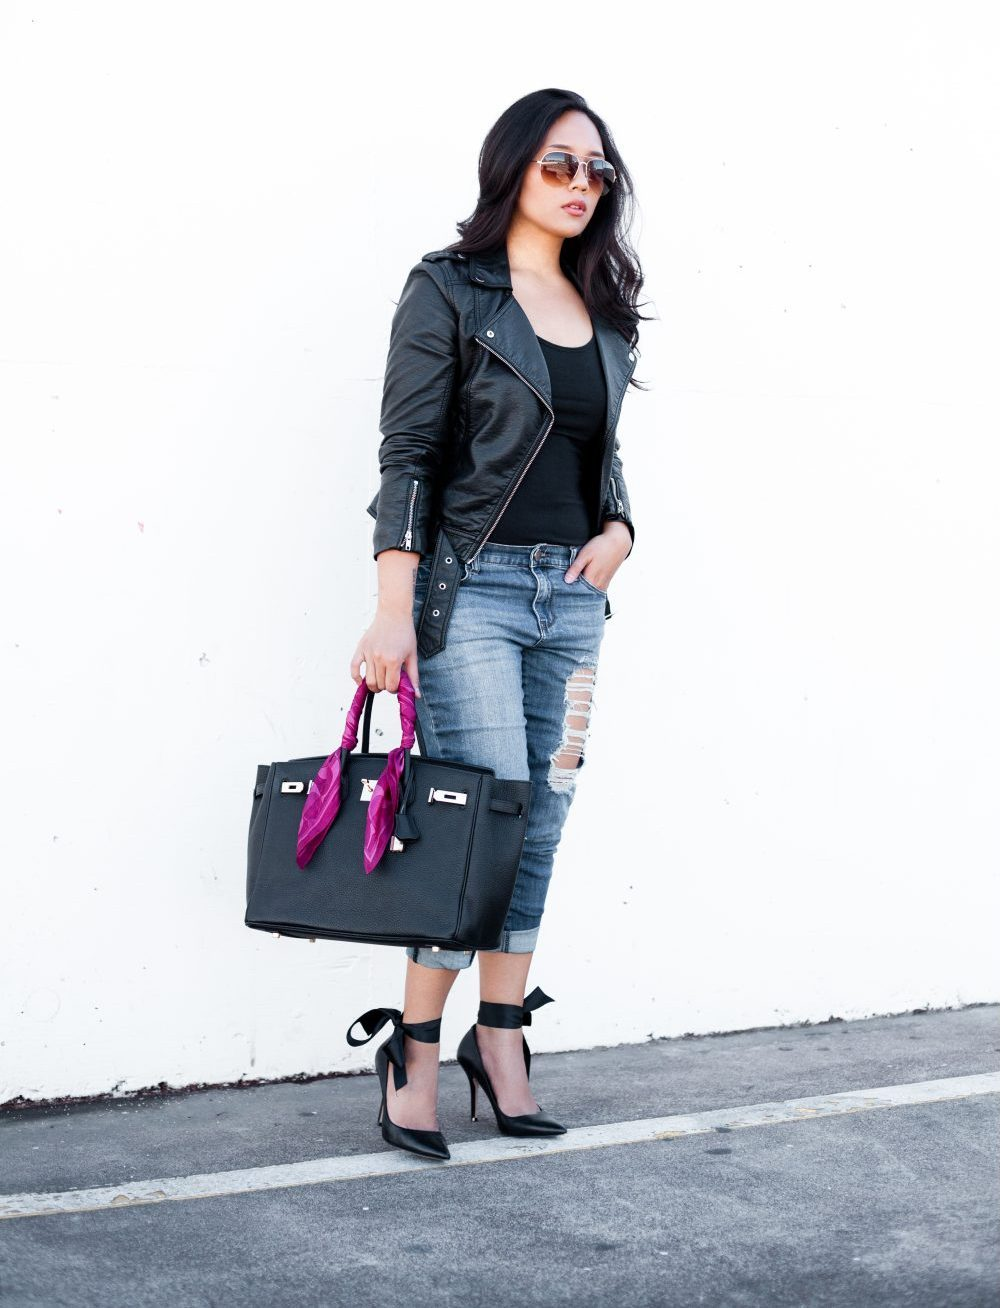 Shop the look: Sunglasses: $6.99, Biker Jacket: $39.99, Longsleeve Top: $16.99, Distressed Jeans: $29.90, Heels: $63.16, Leather Handbag: $64.83 - www.theballeronabudget.com